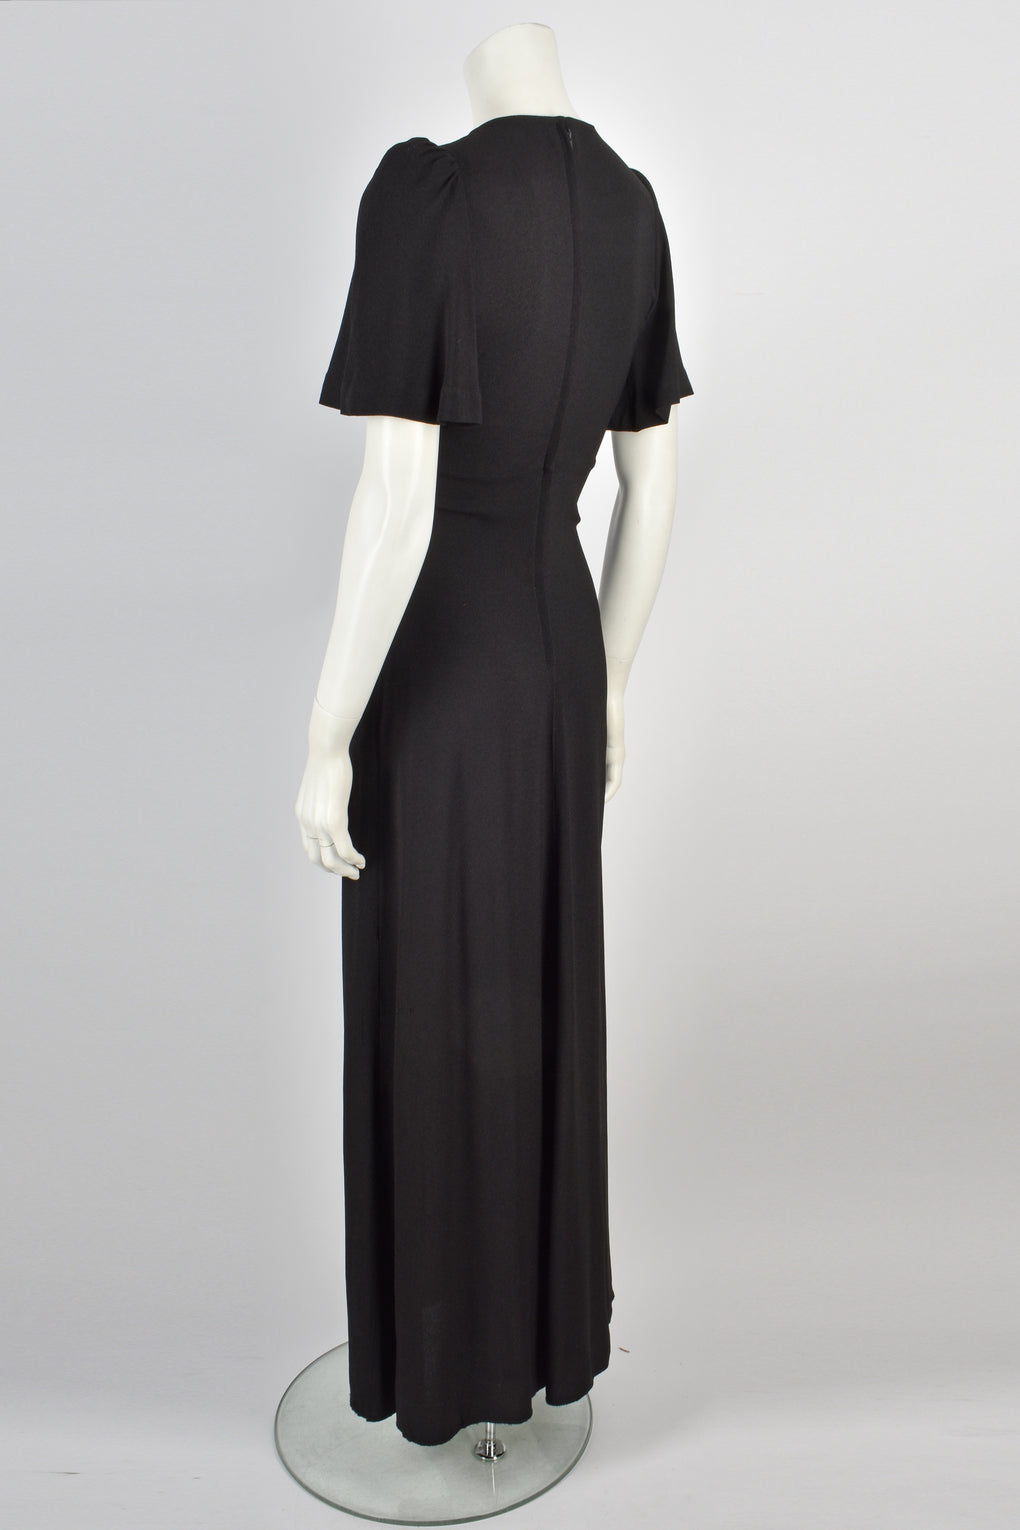 BIBA 1970s black moss crepe dress S